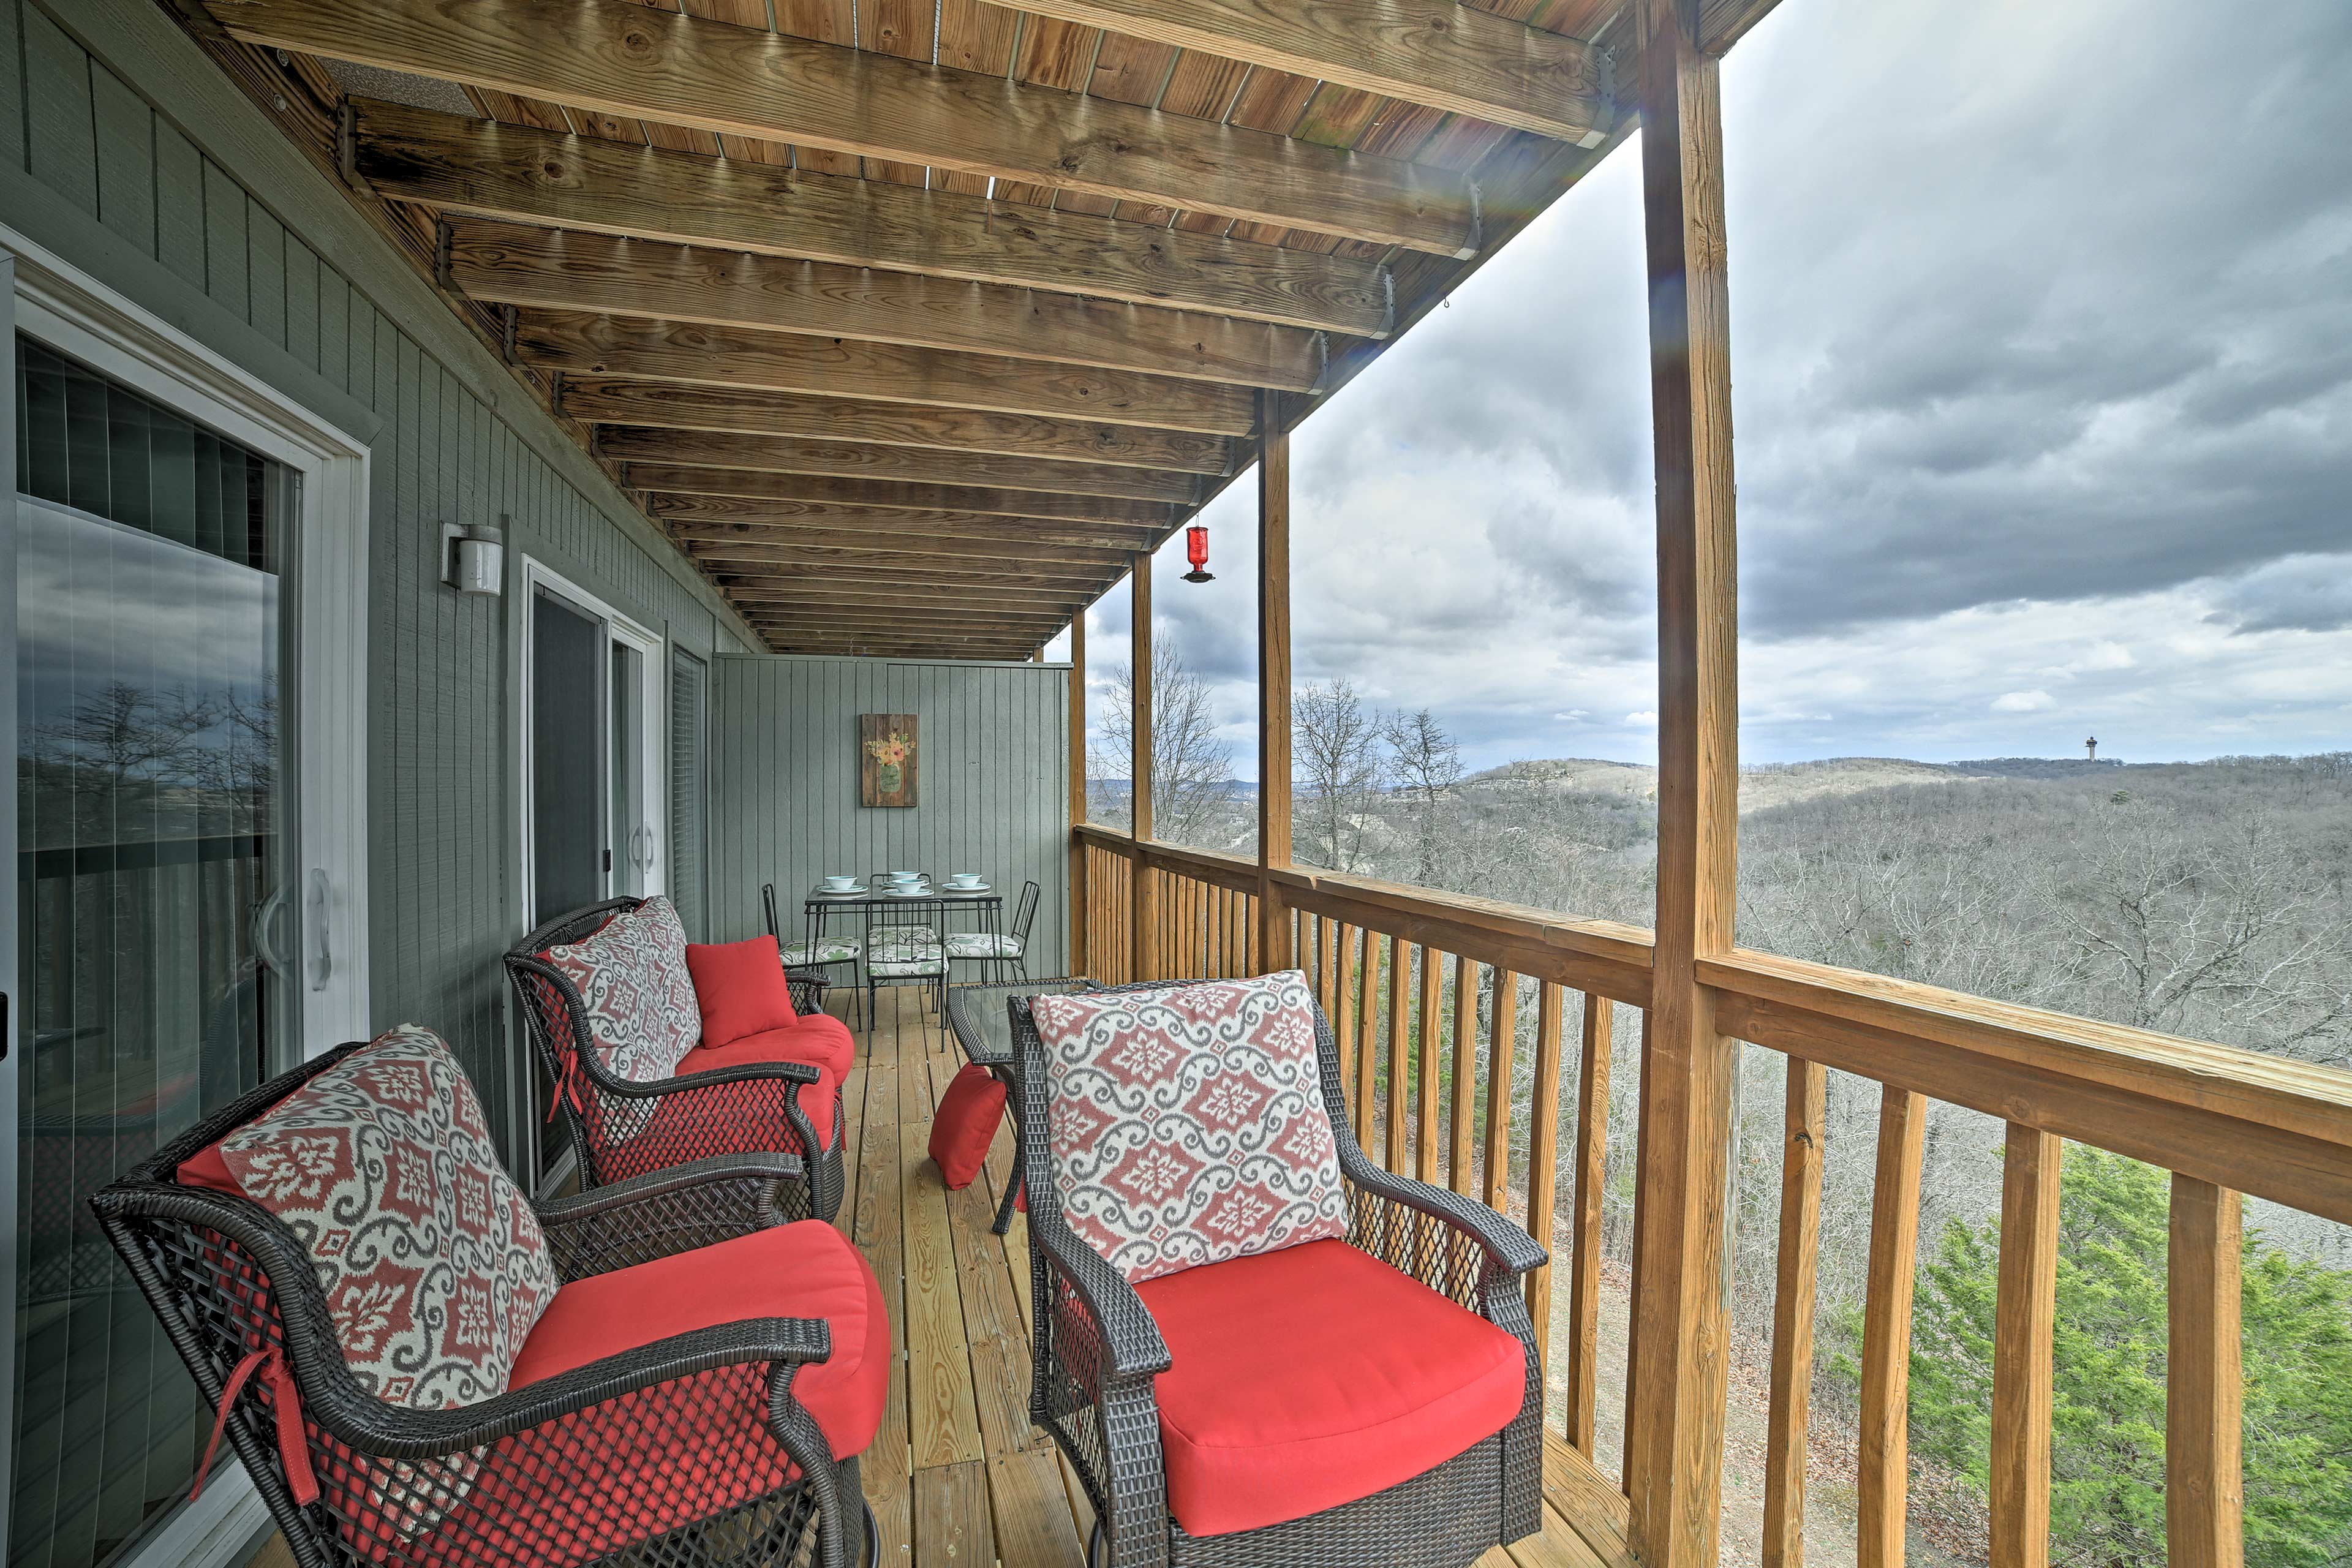 Enjoy peaceful views from the private deck.